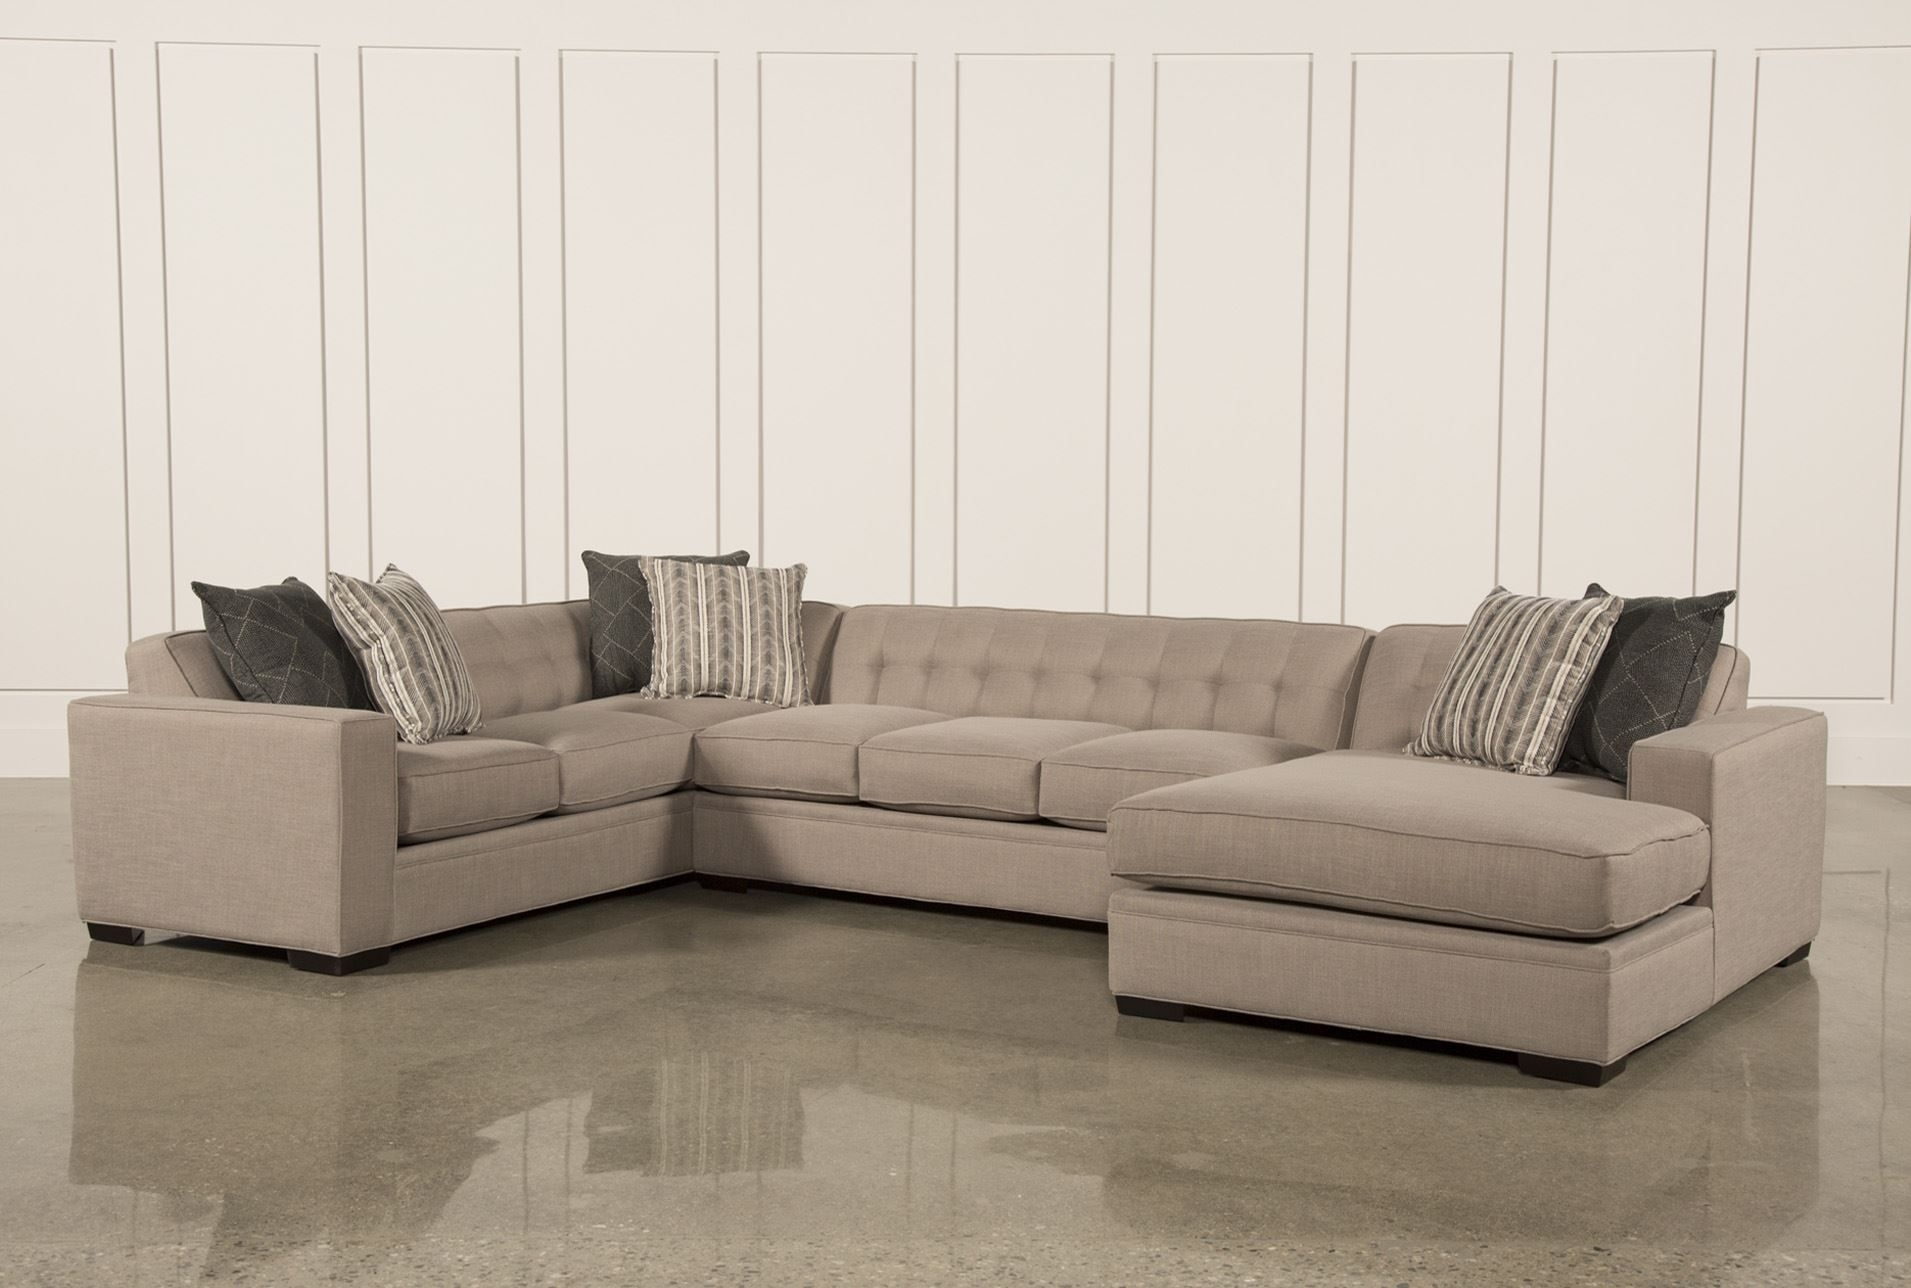 Corbin 3 Piece Sectional W/raf Chaise | New House: Loft | Pinterest Intended For Norfolk Grey 6 Piece Sectionals With Raf Chaise (View 7 of 25)